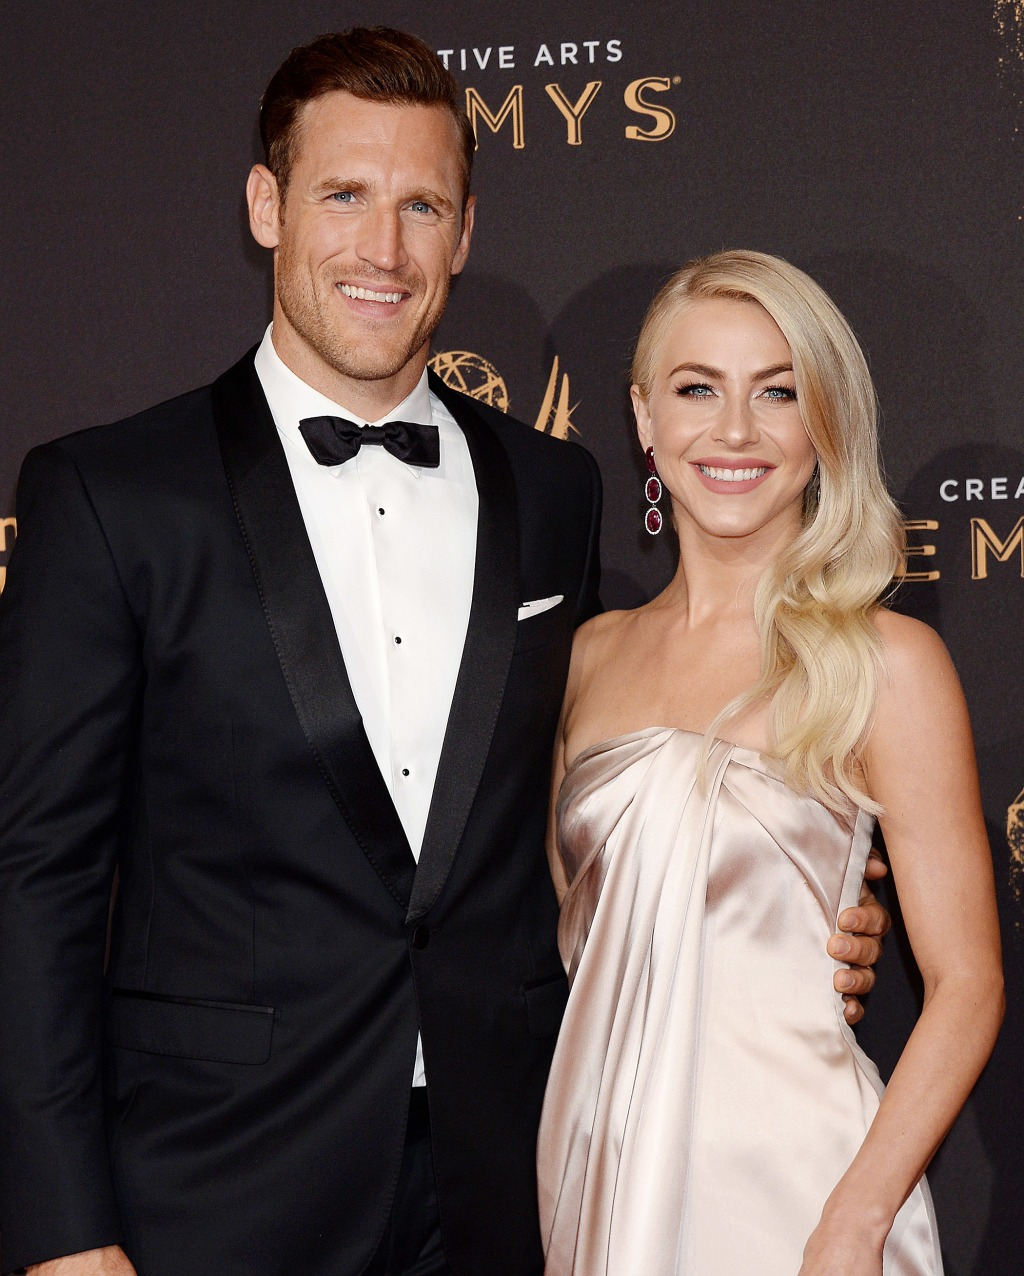 Julianne Hough, ex husband Brooks Laich